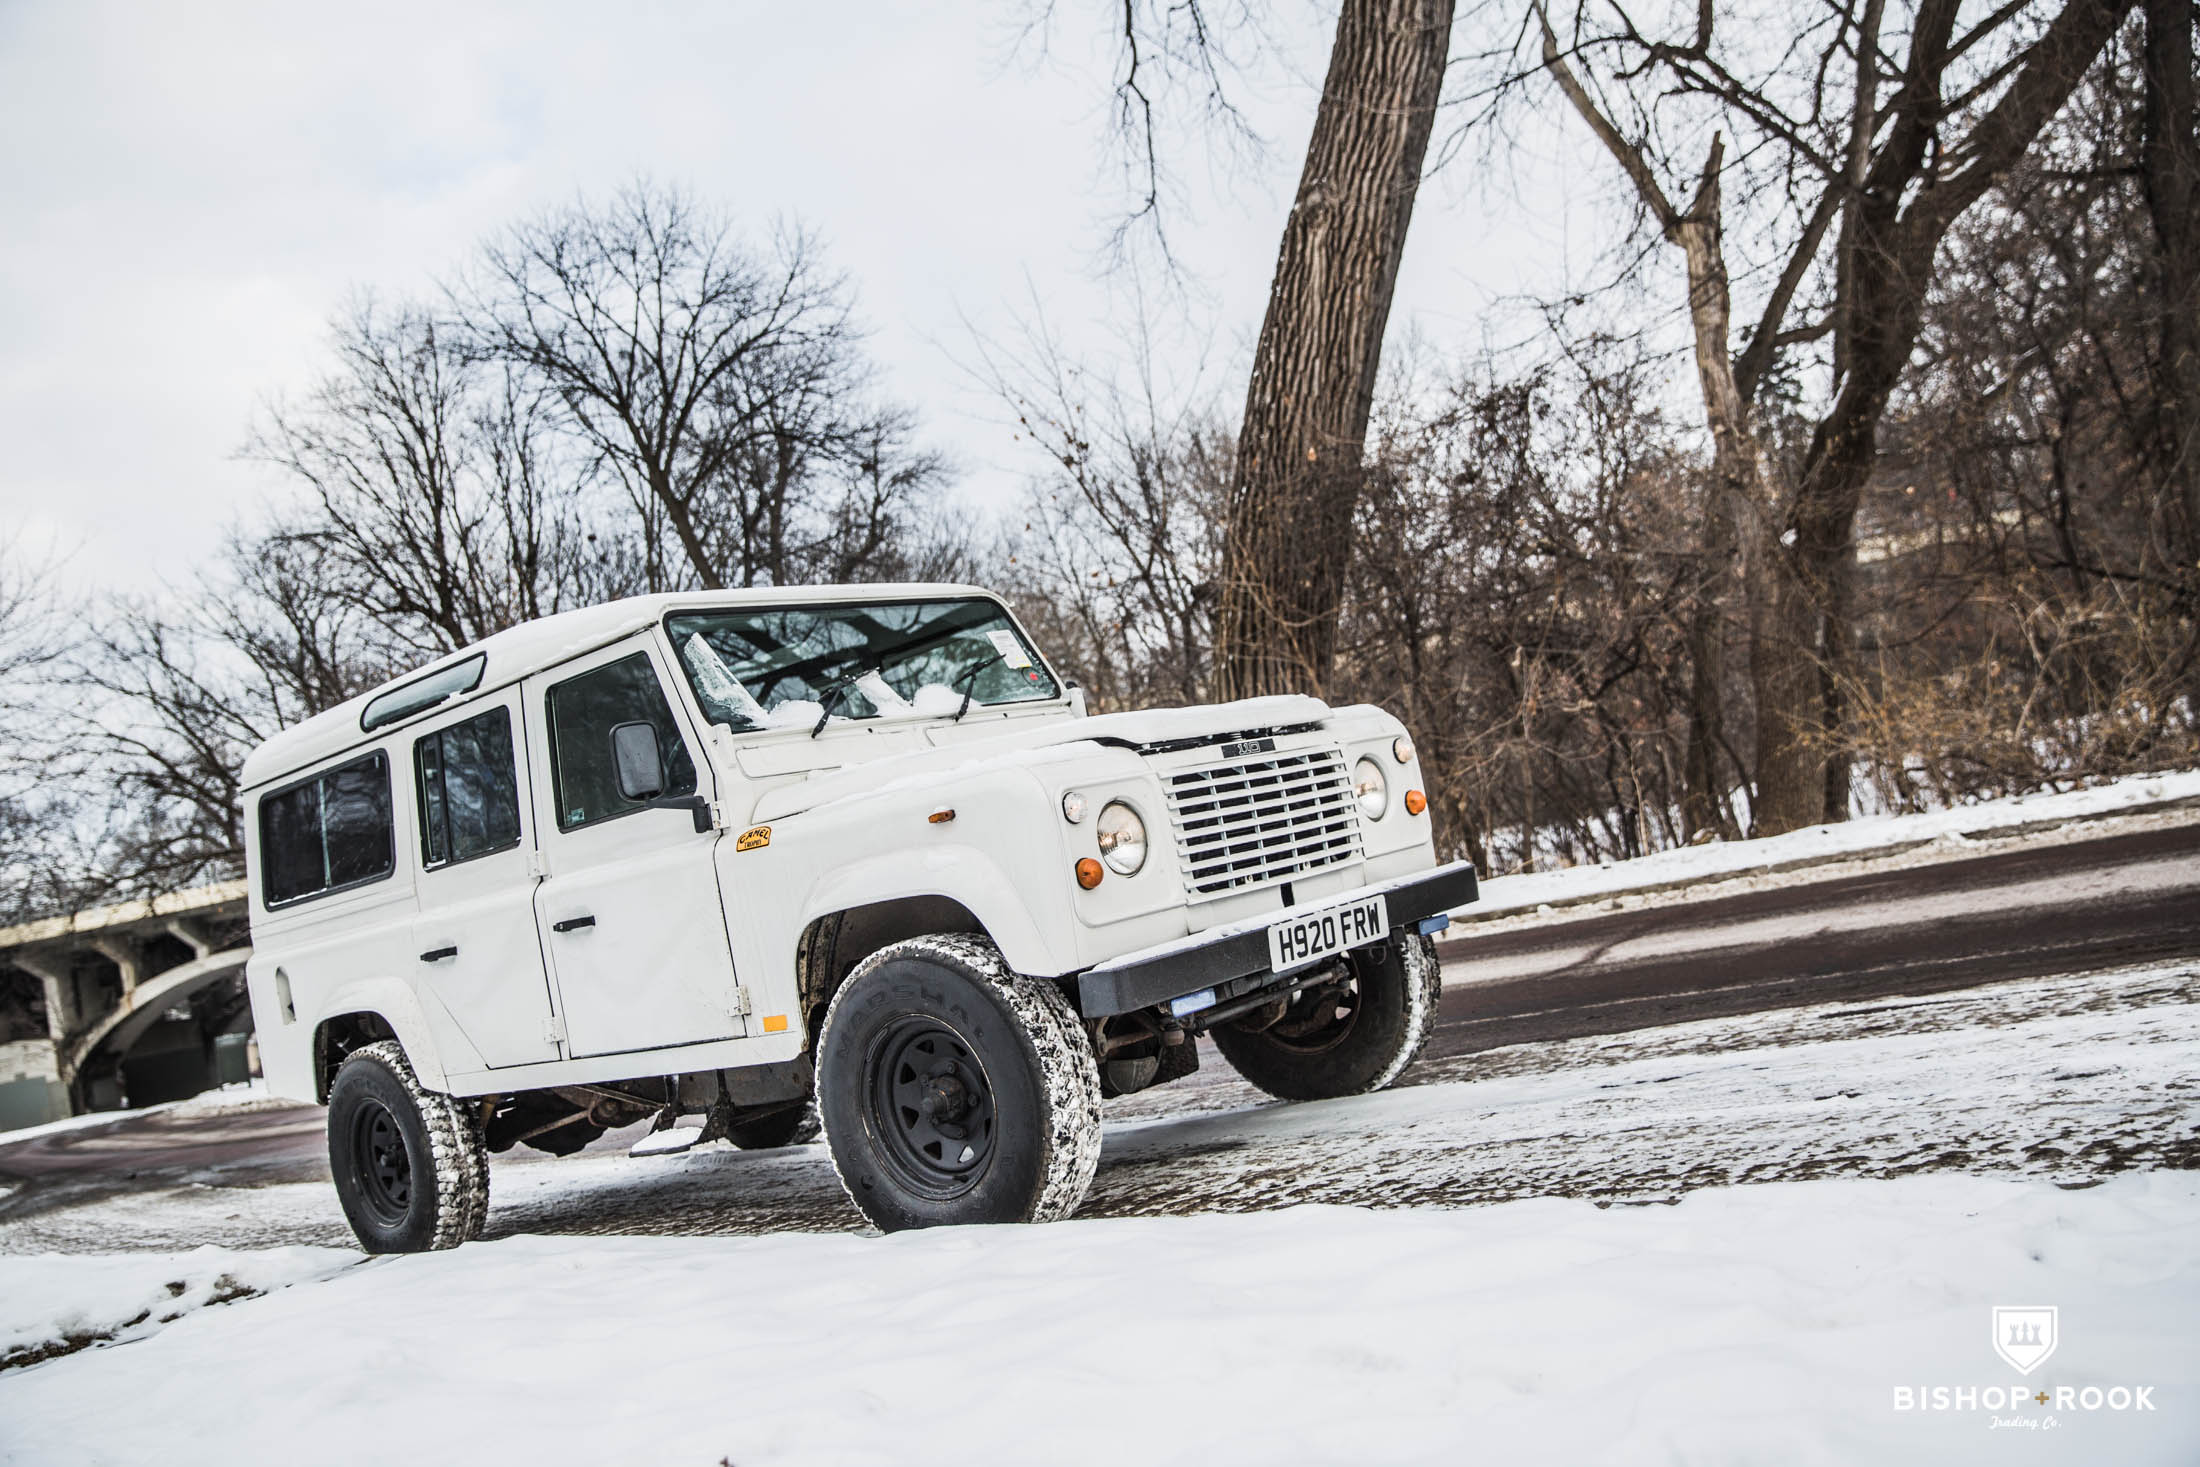 Importing a Classic Land Rover Defender (Part II) - Bishop+Rook ...